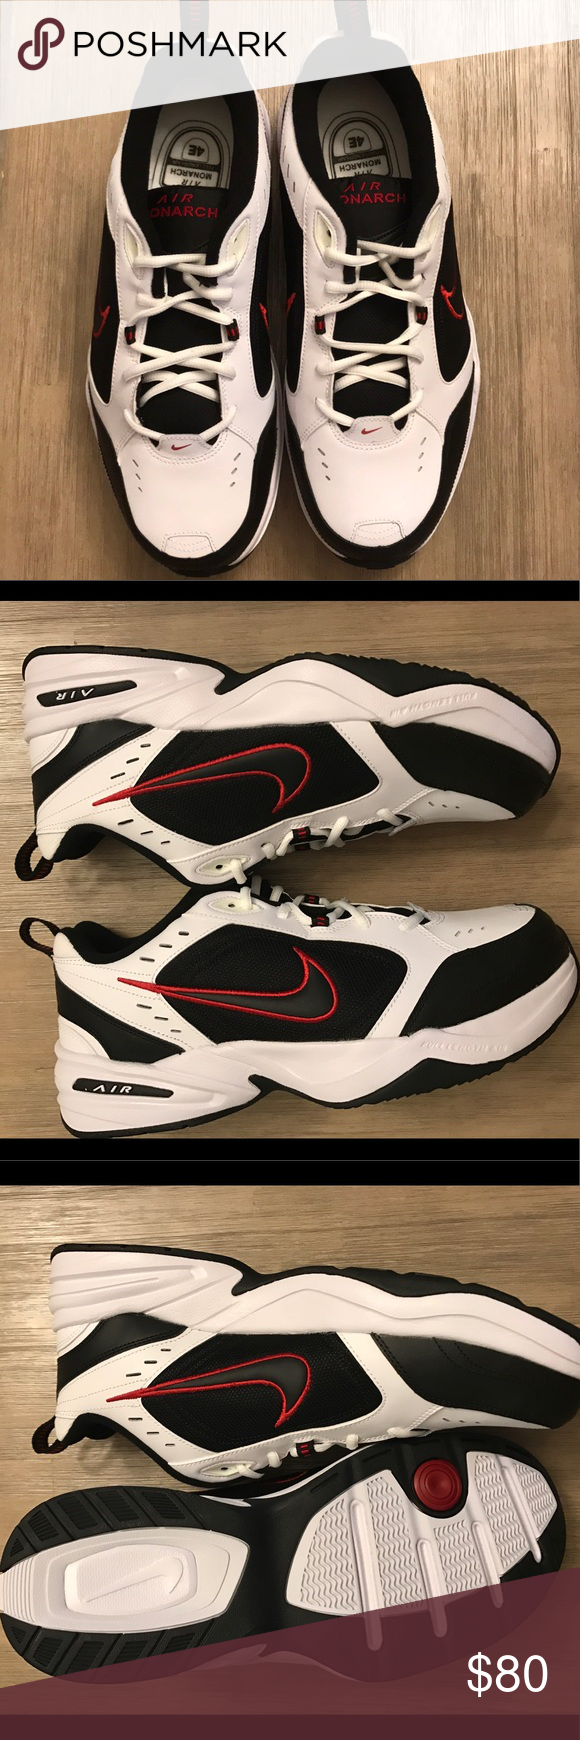 6b3f10c38ea6b Nike Air Monarch IV Men s Training Shoes New with box Color   White Black Red Nike Shoes Athletic Shoes